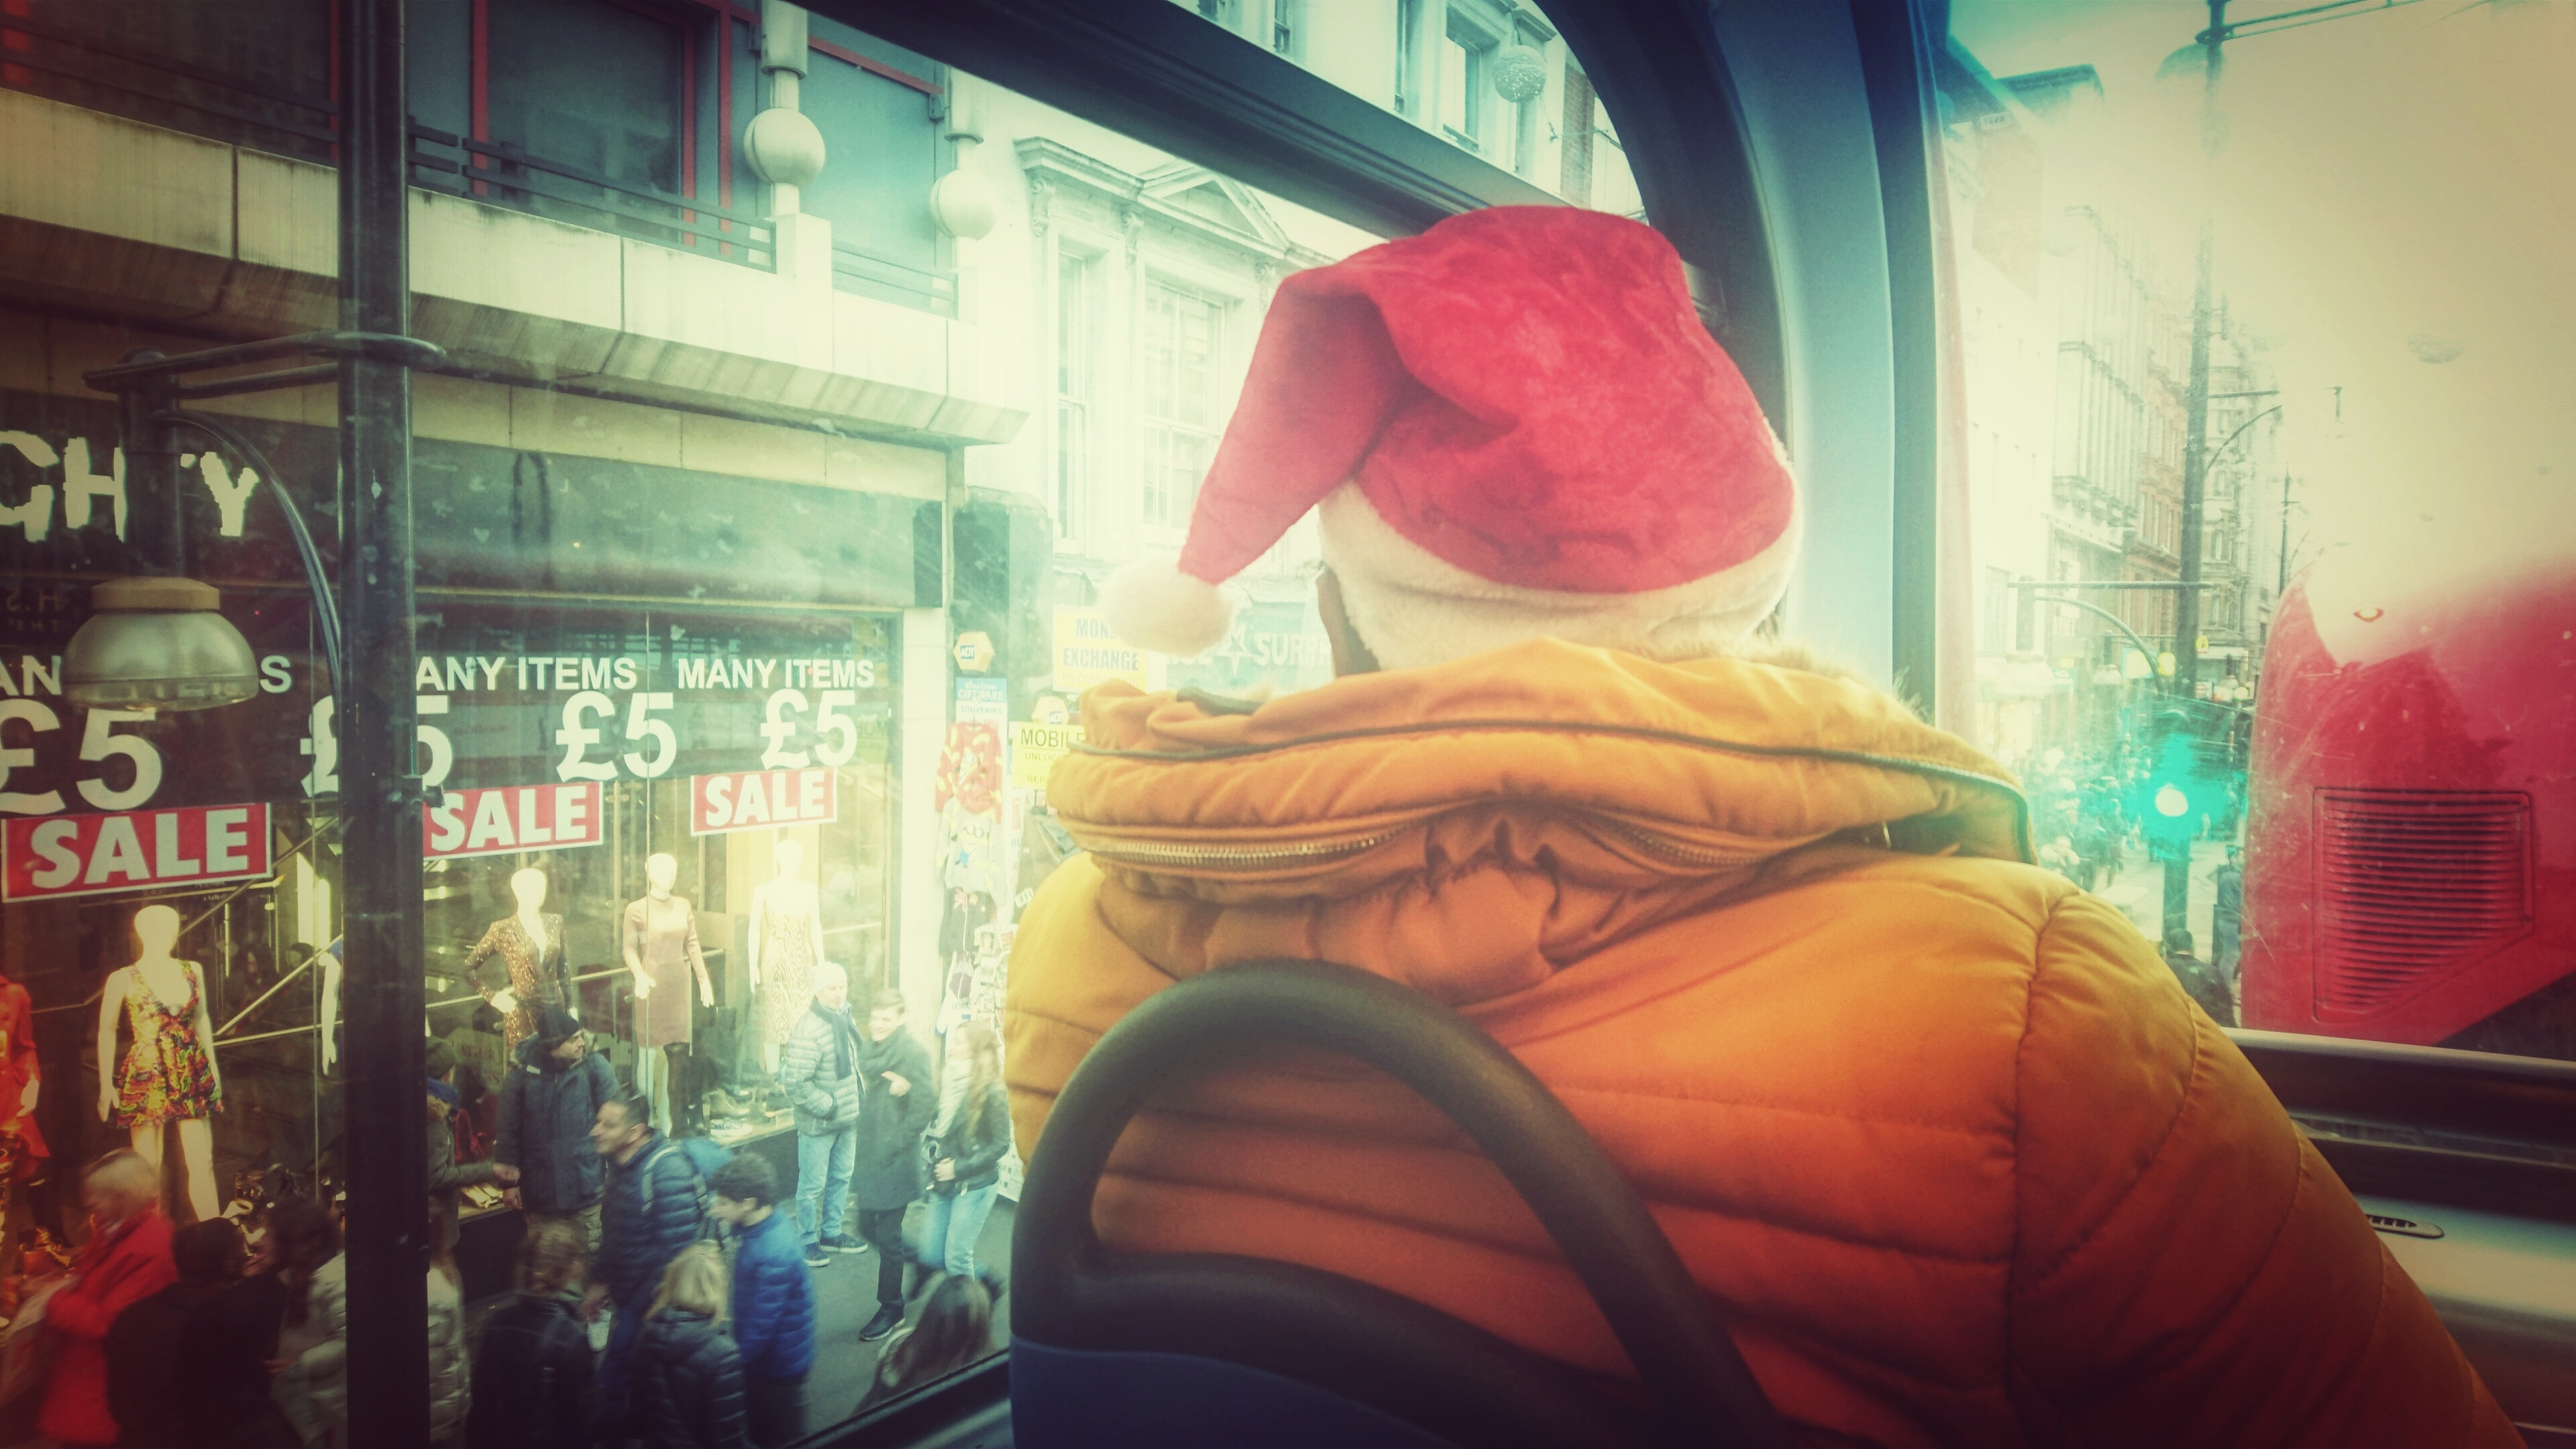 Dreaming of a White Christmas: Im Bus in London. Foto: jag, 2016.